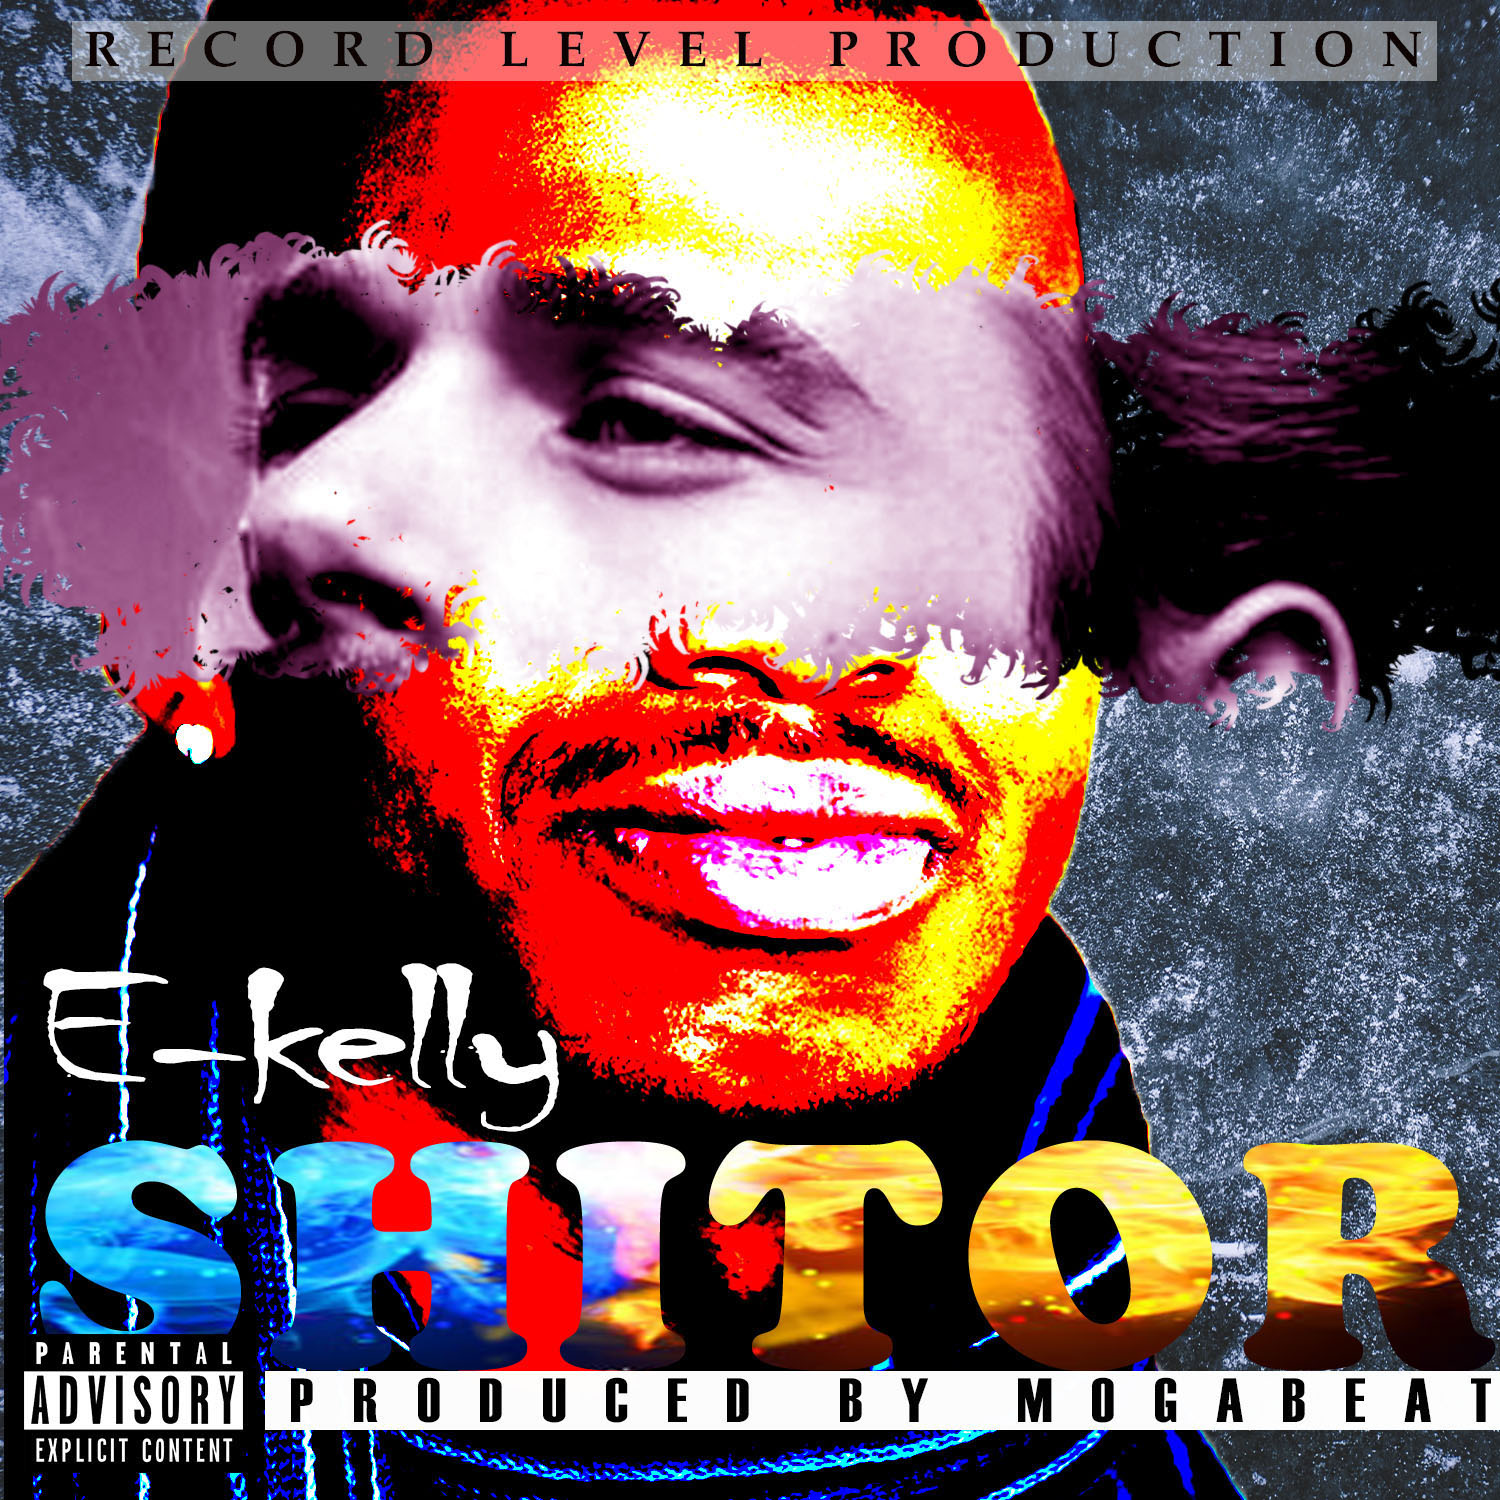 I will creatively design music cover or mixtape cover art with image SEO